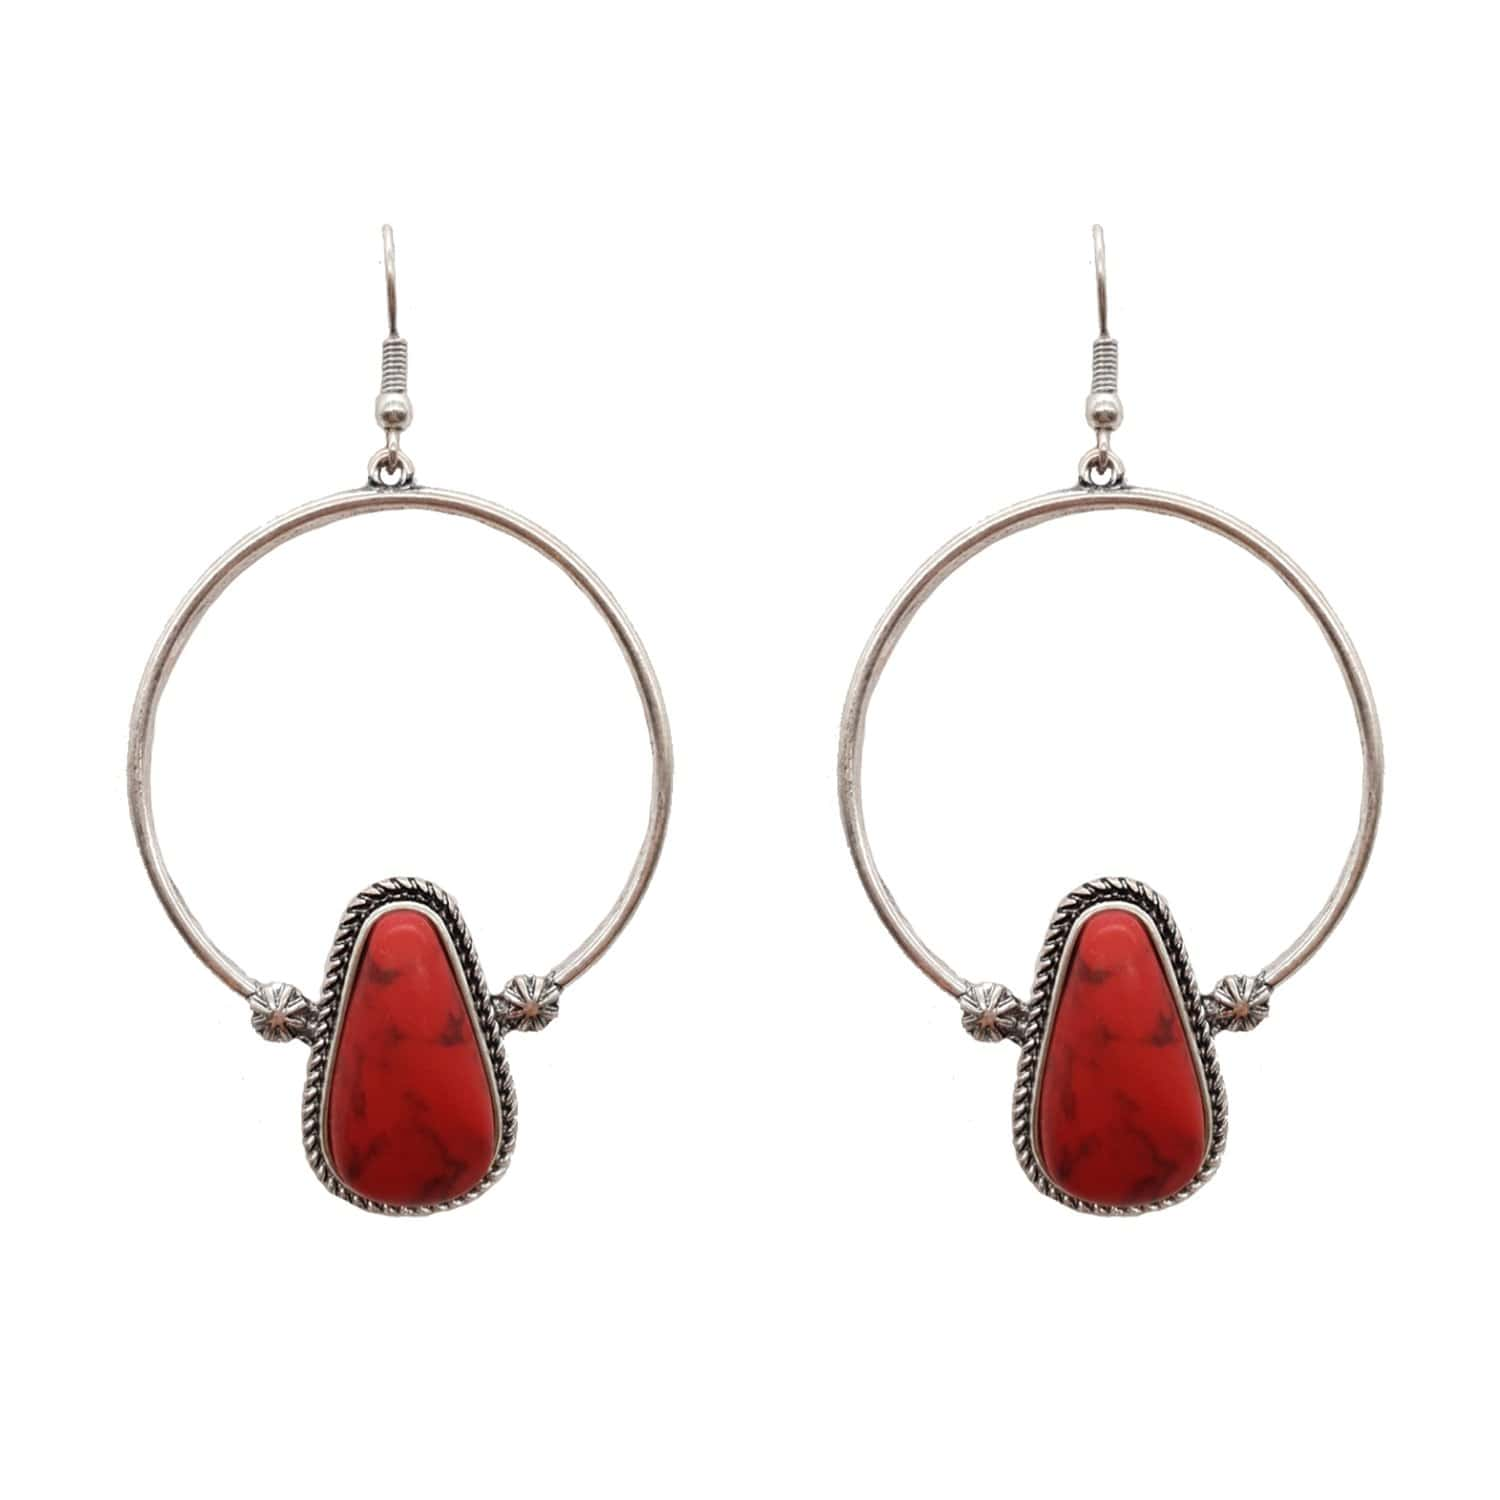 Accessorize In Style Fashion Earrings Fashion Hoop Red Tear Drop Stone Earrings